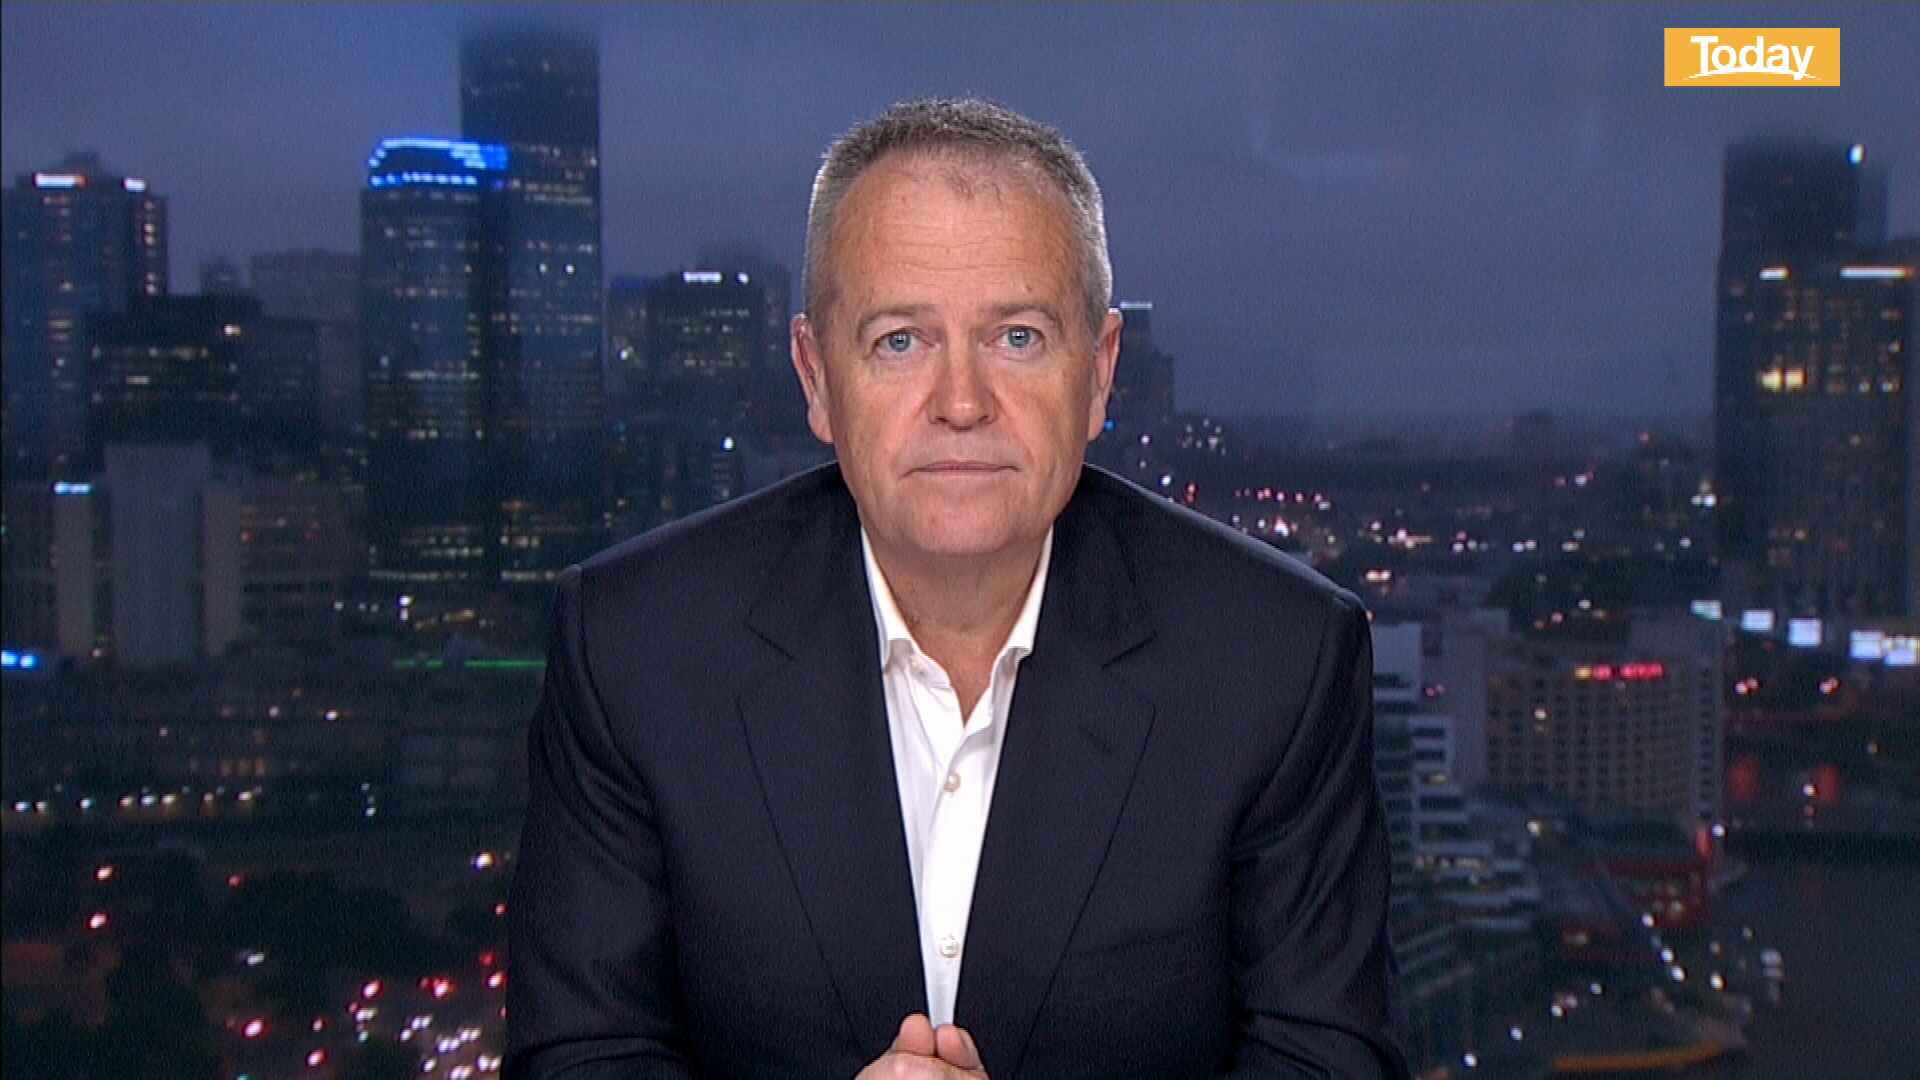 Coronavirus: More needs to be done for jobless, says Shorten